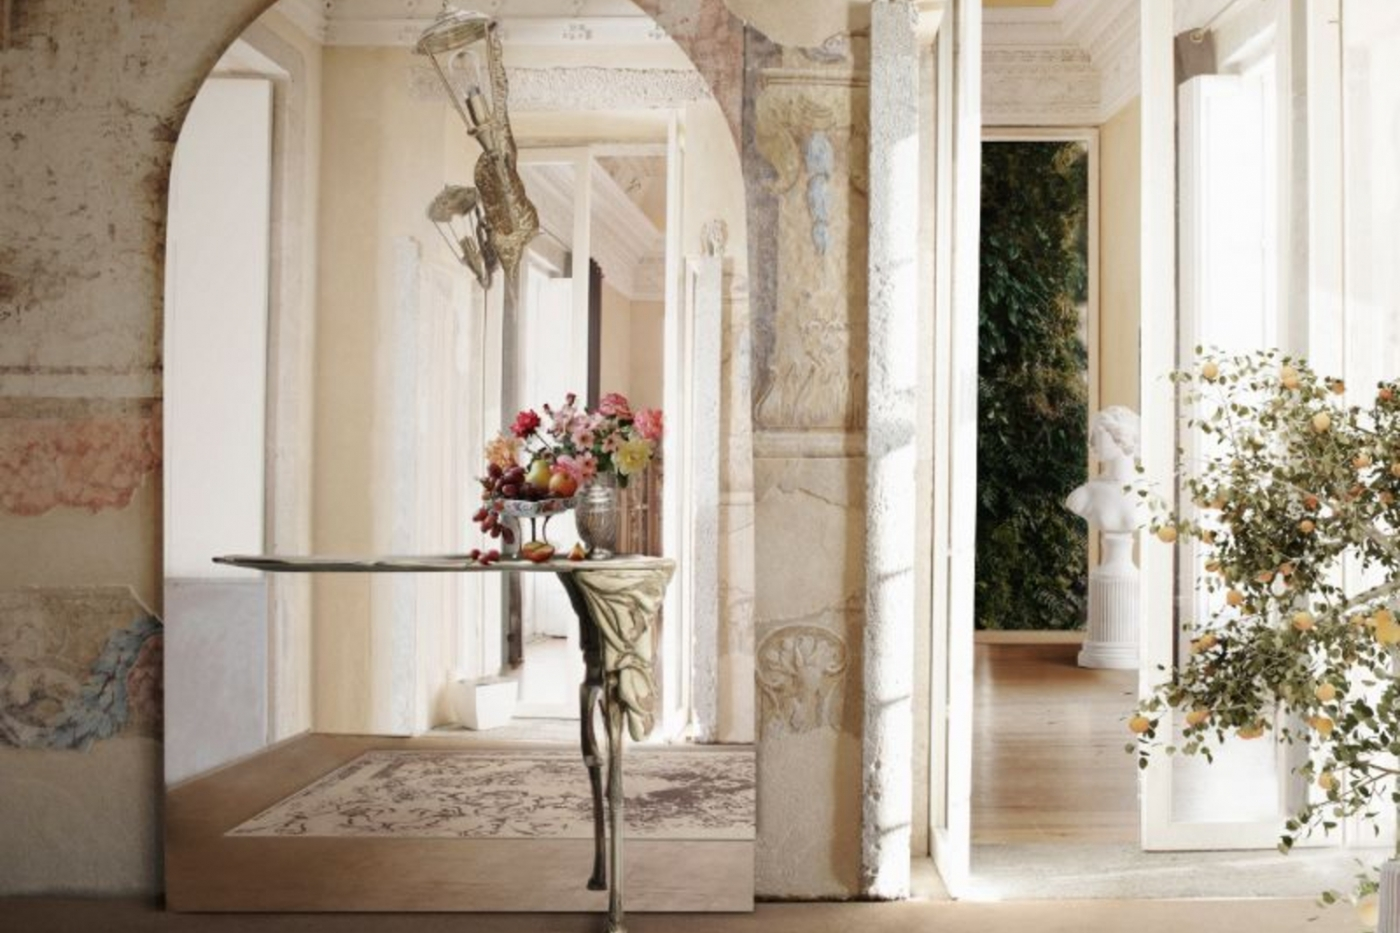 lighting collection The Lumière Lighting Collection Pays Homage To Fine Craftsmanship feature image 52 1400x933